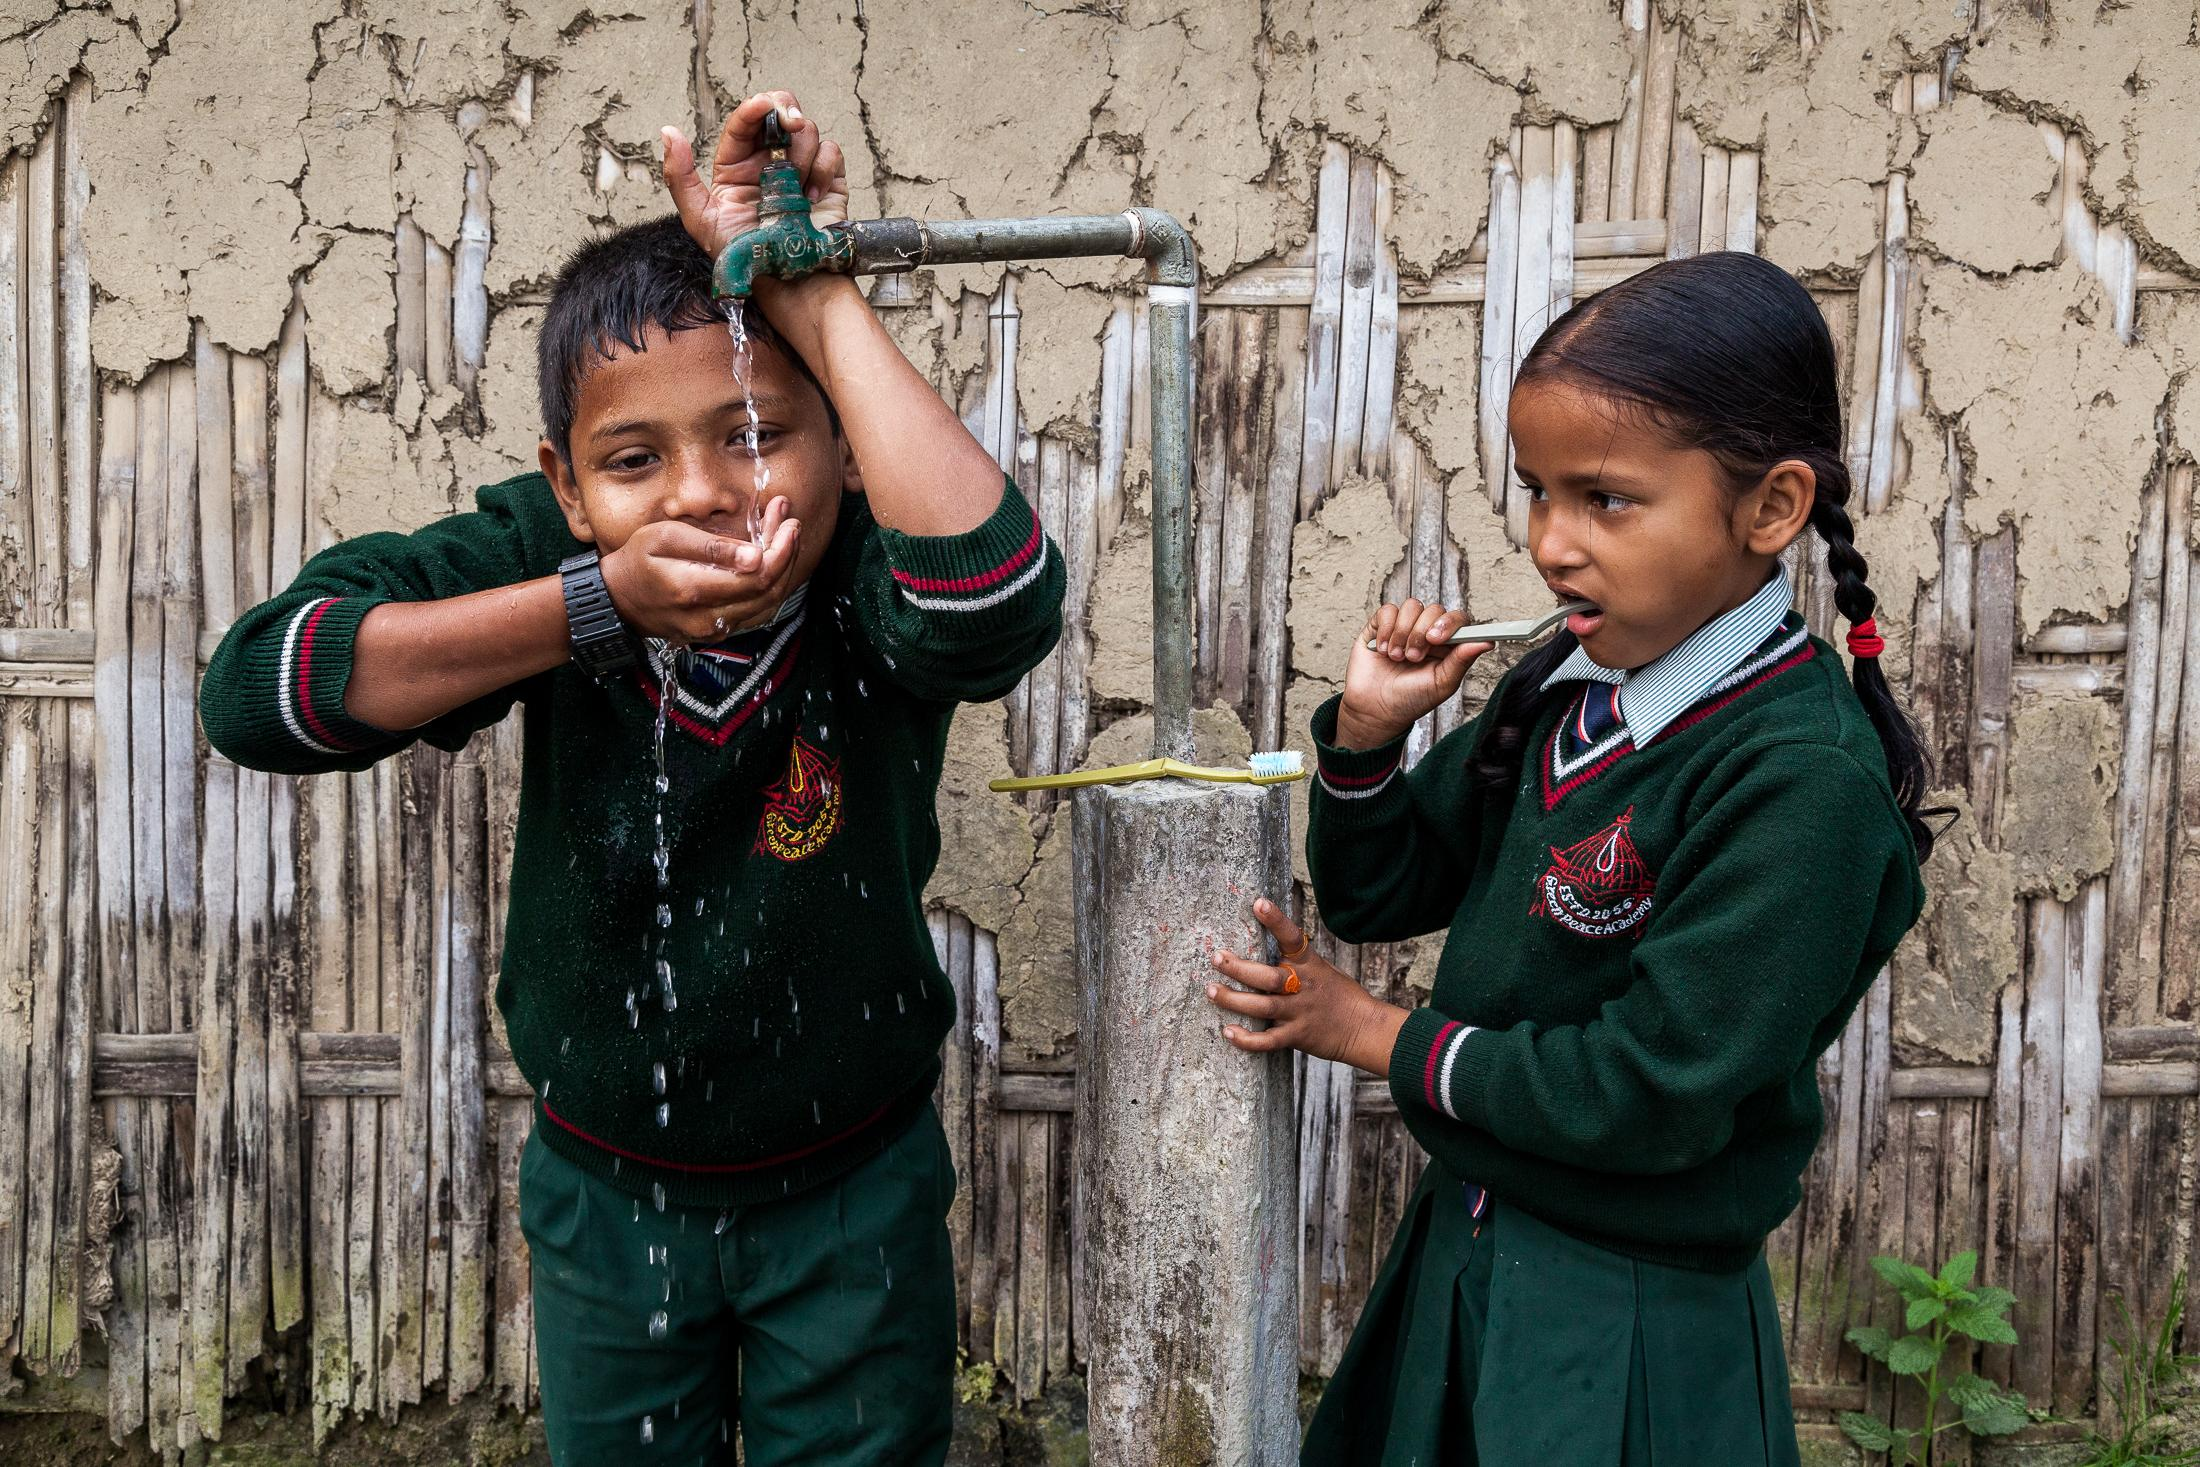 ITAHARI, NEPAL - February 25, 2015: Badal (left), 13 years old, drinks water while Barsa (right), 8 years old, brushes her teeth from a water tap installed by the organization Lumanti before going to school in the Pragatitol neighborhood on the outskirts of Itahari, Nepal on February 25, 2015. Despite Nepal's extensive natural resources, access to clean and affordable water remains a problem throughout the country. For many people in the more remote mountains and hills, water sources are often far away and not necessarily safe, and the simple act of fetching water can drain a community's human resources. Photo: © Omar Havana for Water Aid Nepal